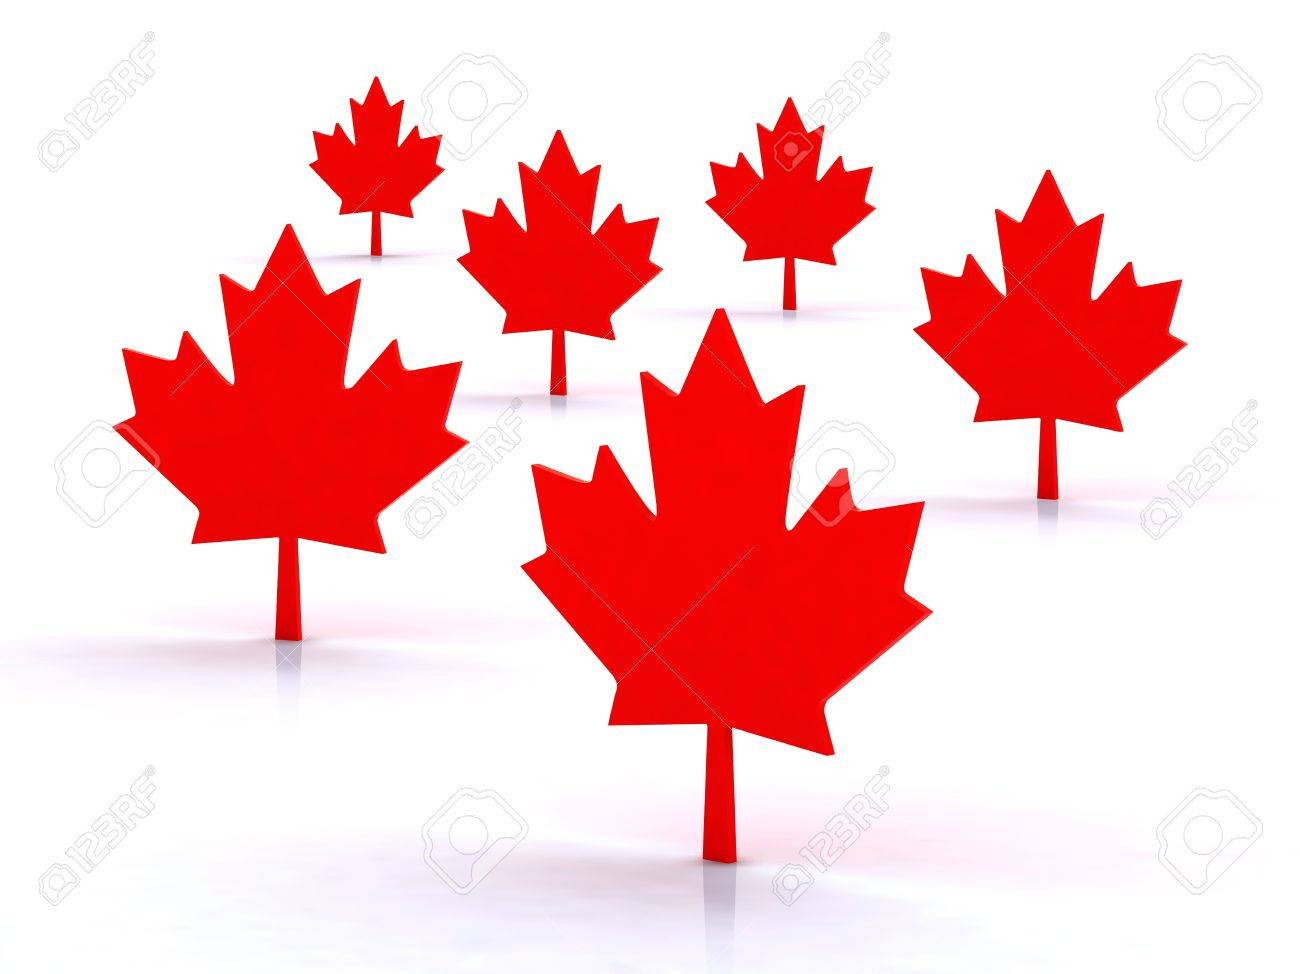 Maple Leafs Canadian Symbol 3d Illustration Stock Photo Picture